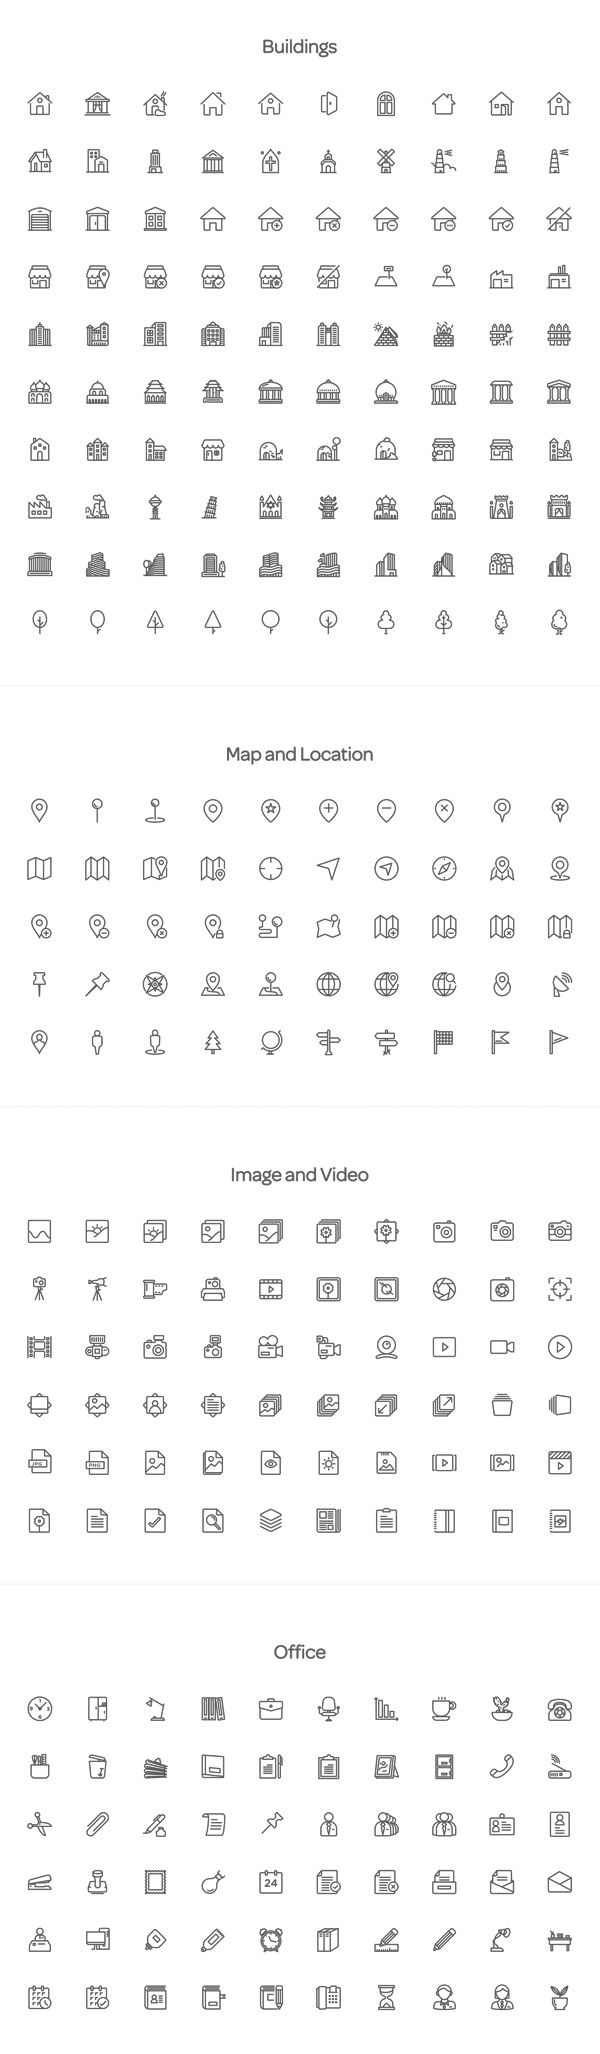 Buildings; Map and Location; Image and Video; Office – the full pack includes 2000 line icons with PSD, AI, EPS, SVG, and PNG files.